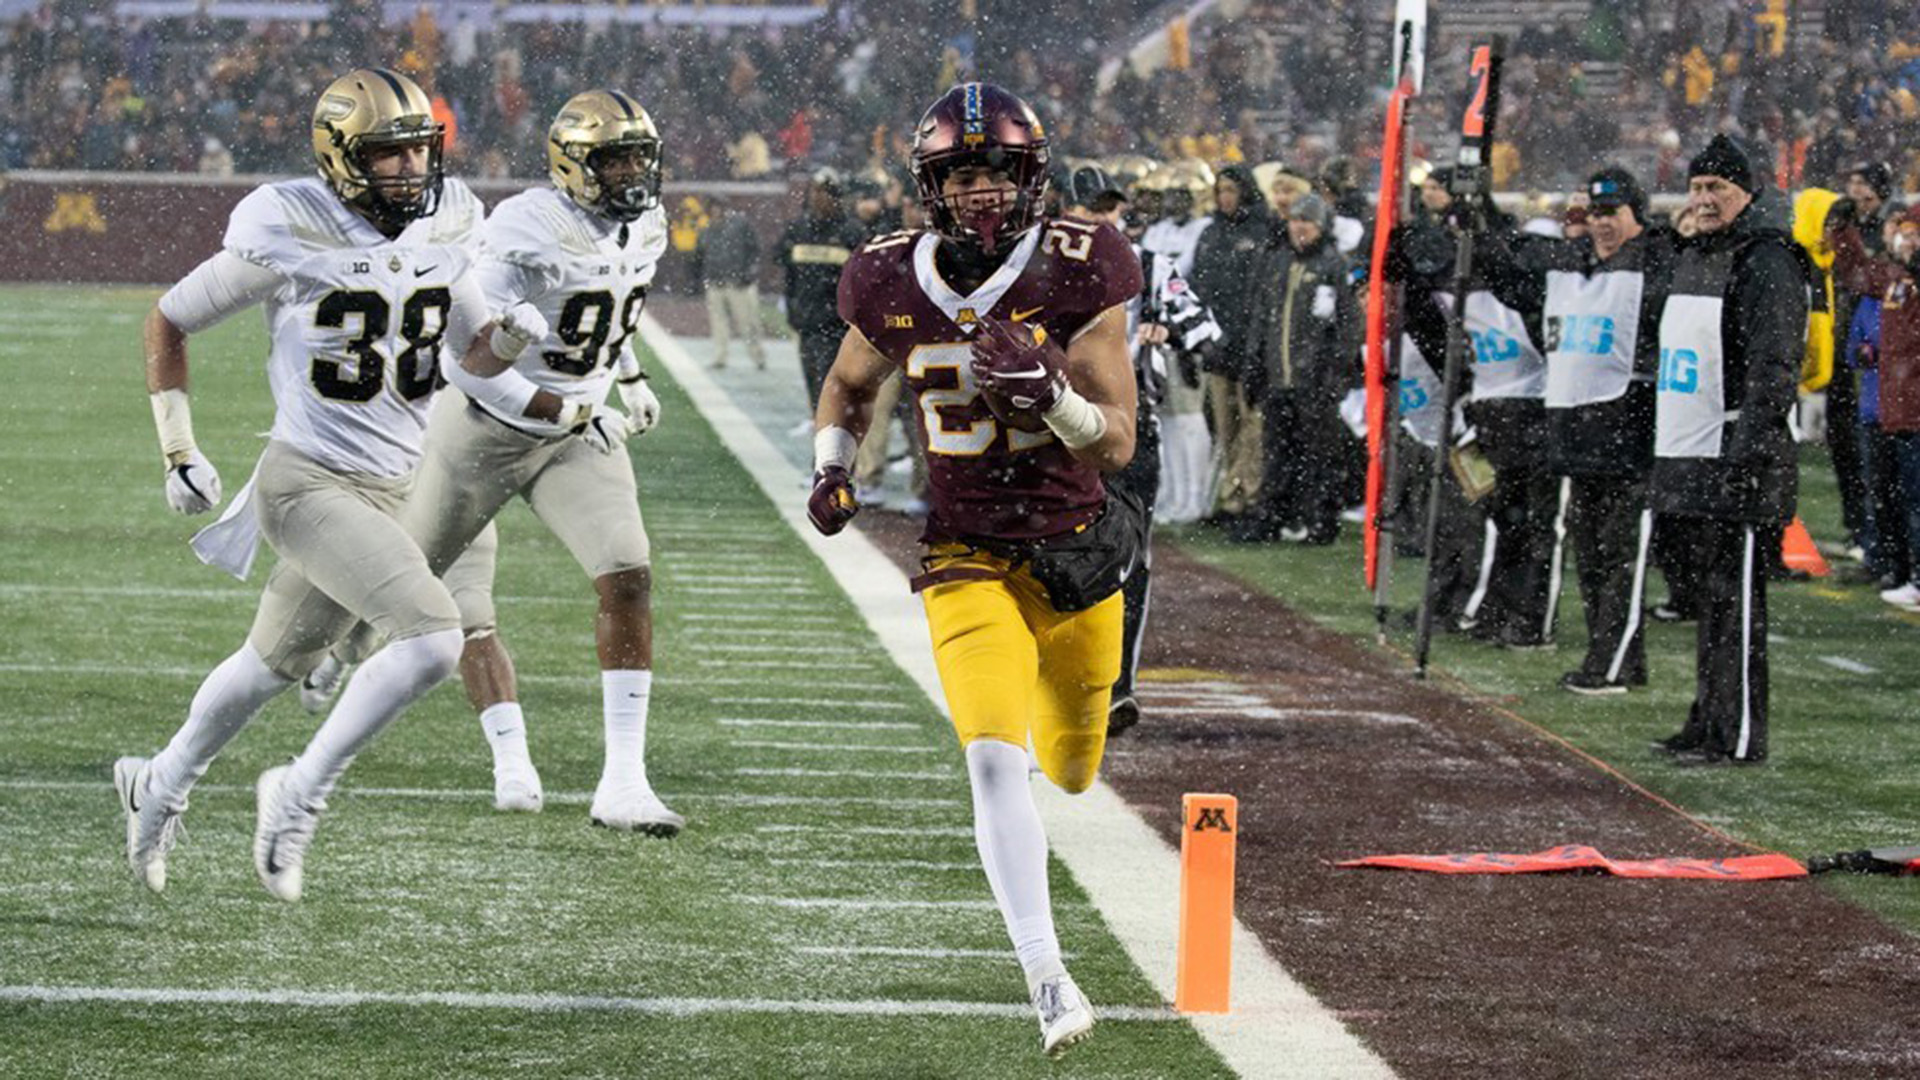 Bryce Williams eludes tackles to score against Purdue